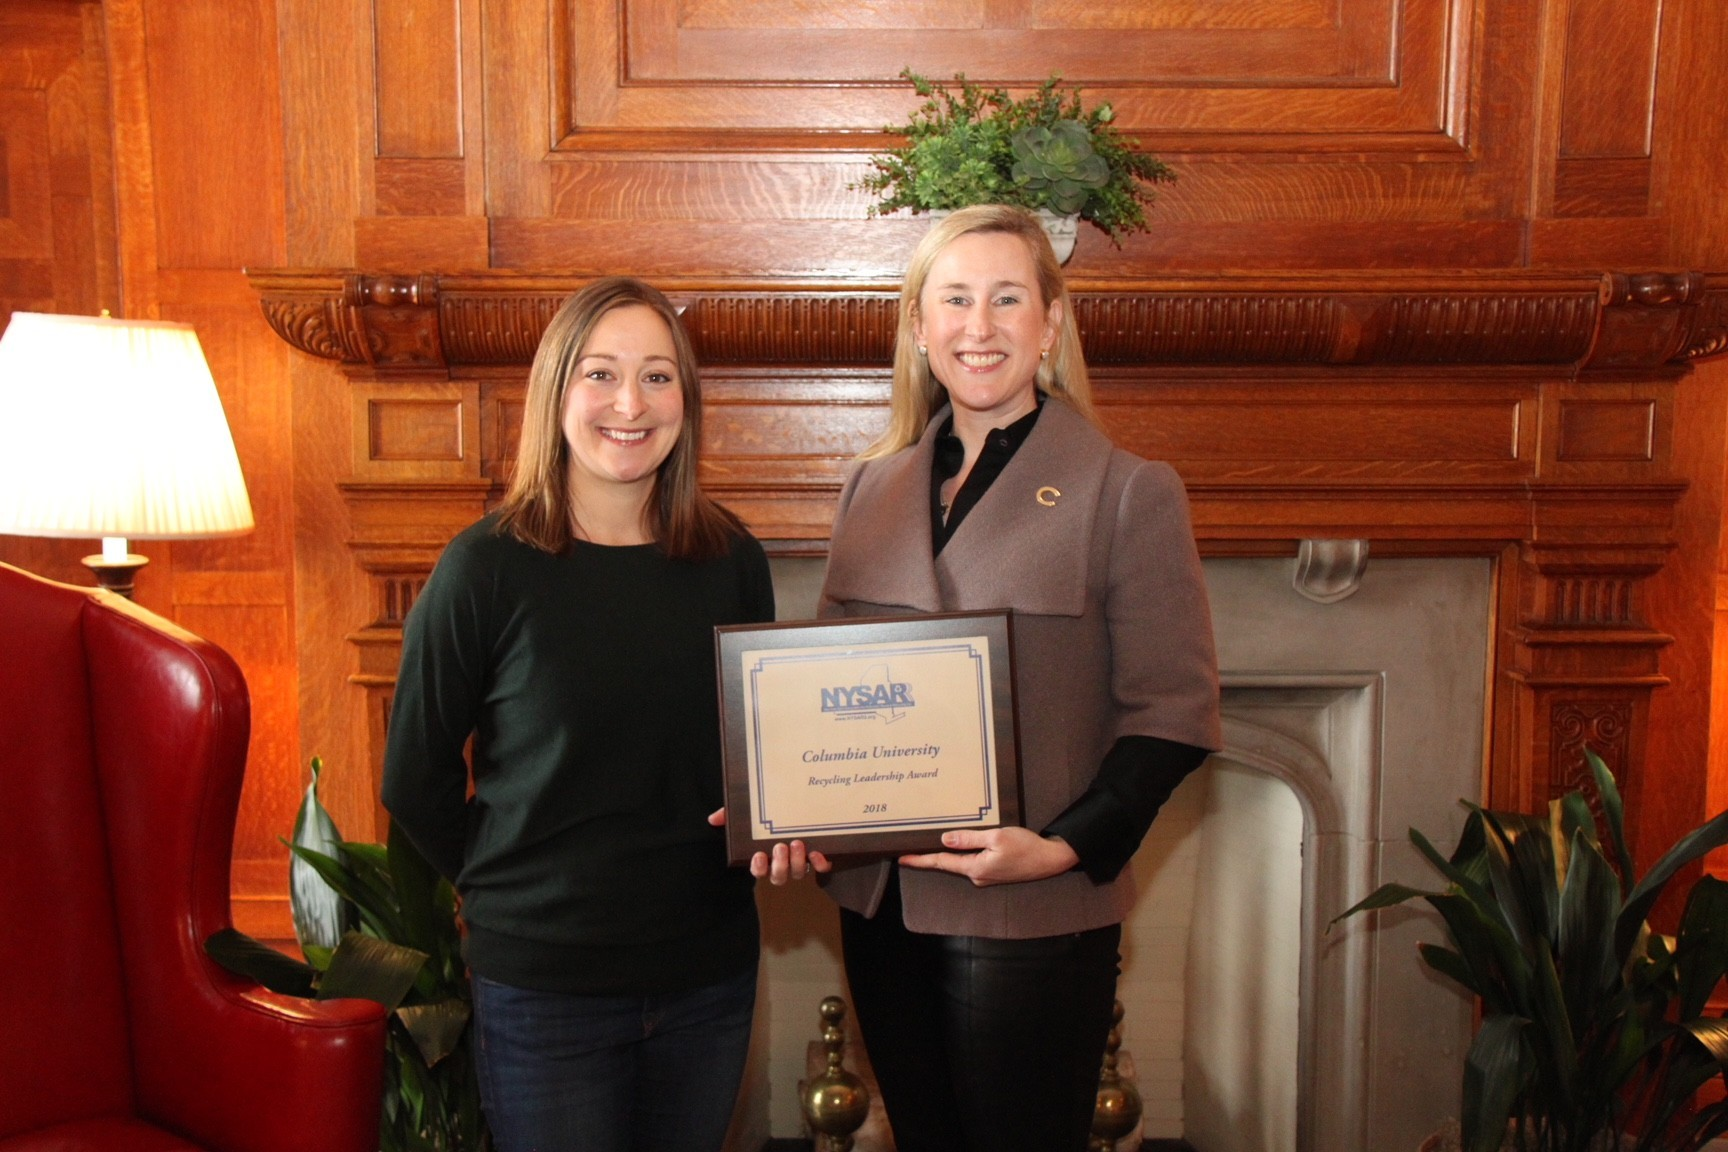 Jessica Prata, assistant vice president of Environmental Stewardship for Columbia University, (right) is presented with the 2018 Recycling Leadership Award-College or University by NYSAR3 President Kelli Timbrook.